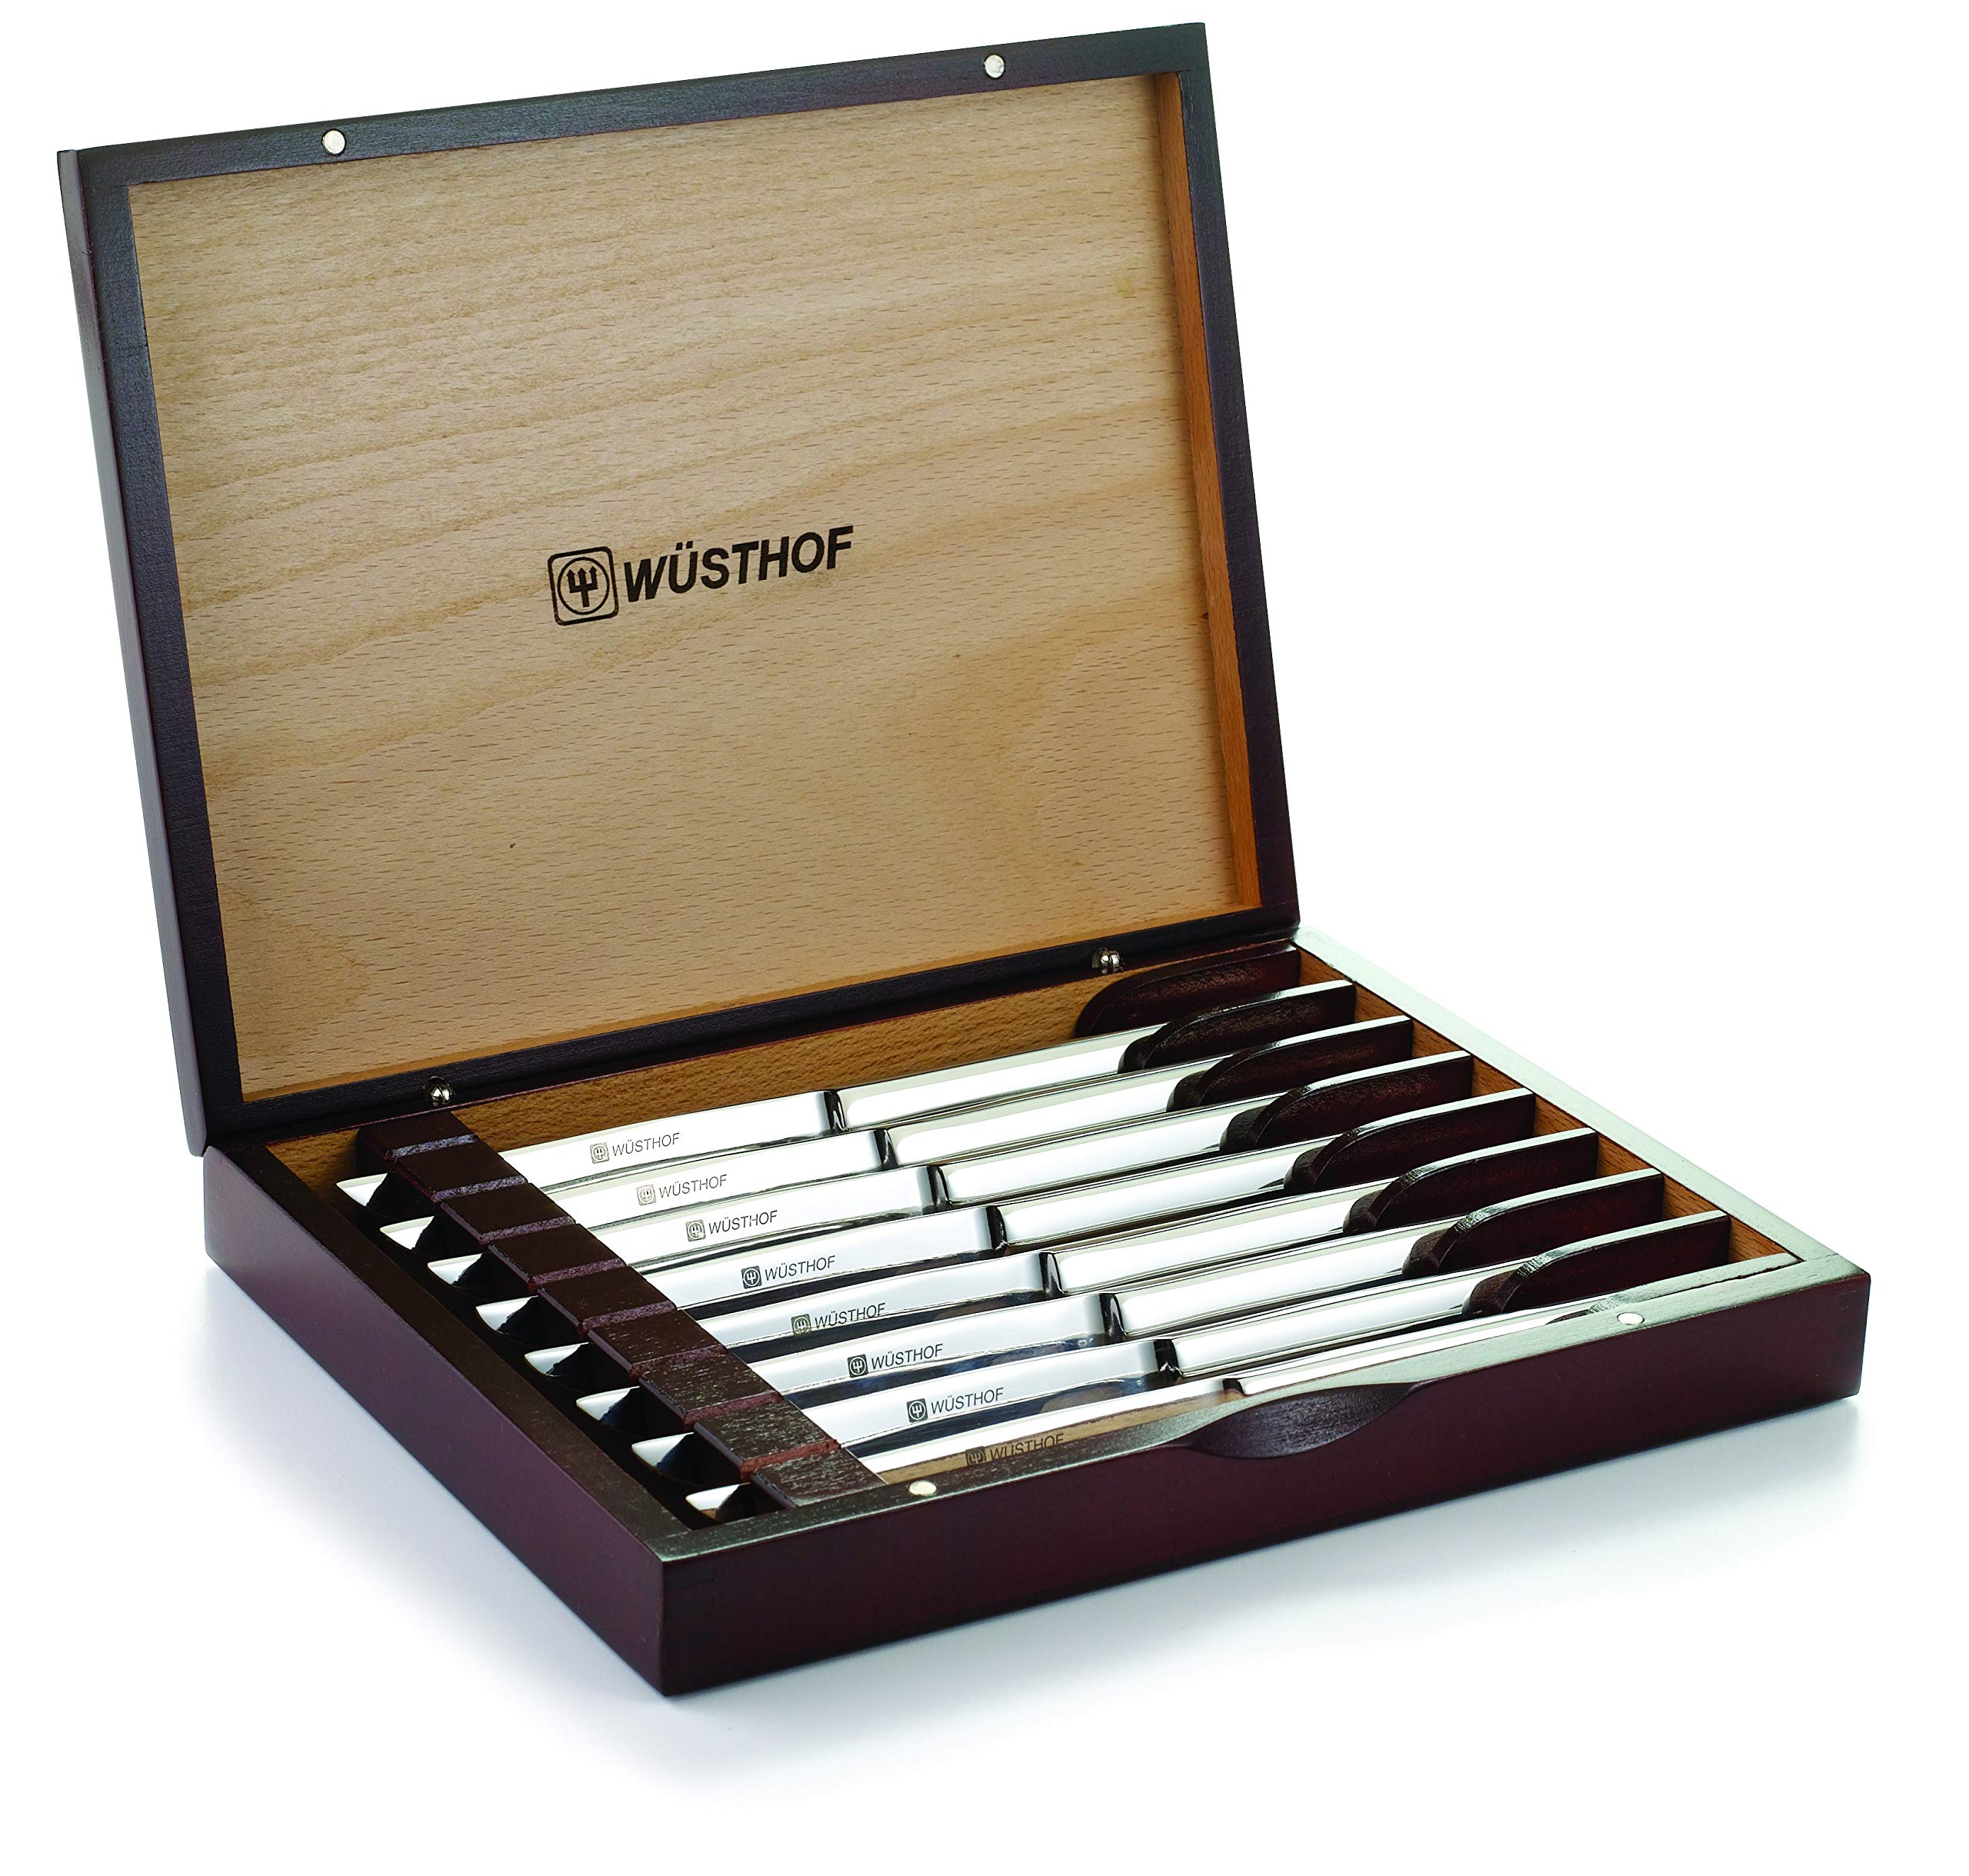 Wusthof 8-Piece Stainless-Steel Steak Knife Set with Wooden Gift Box by Wüsthof